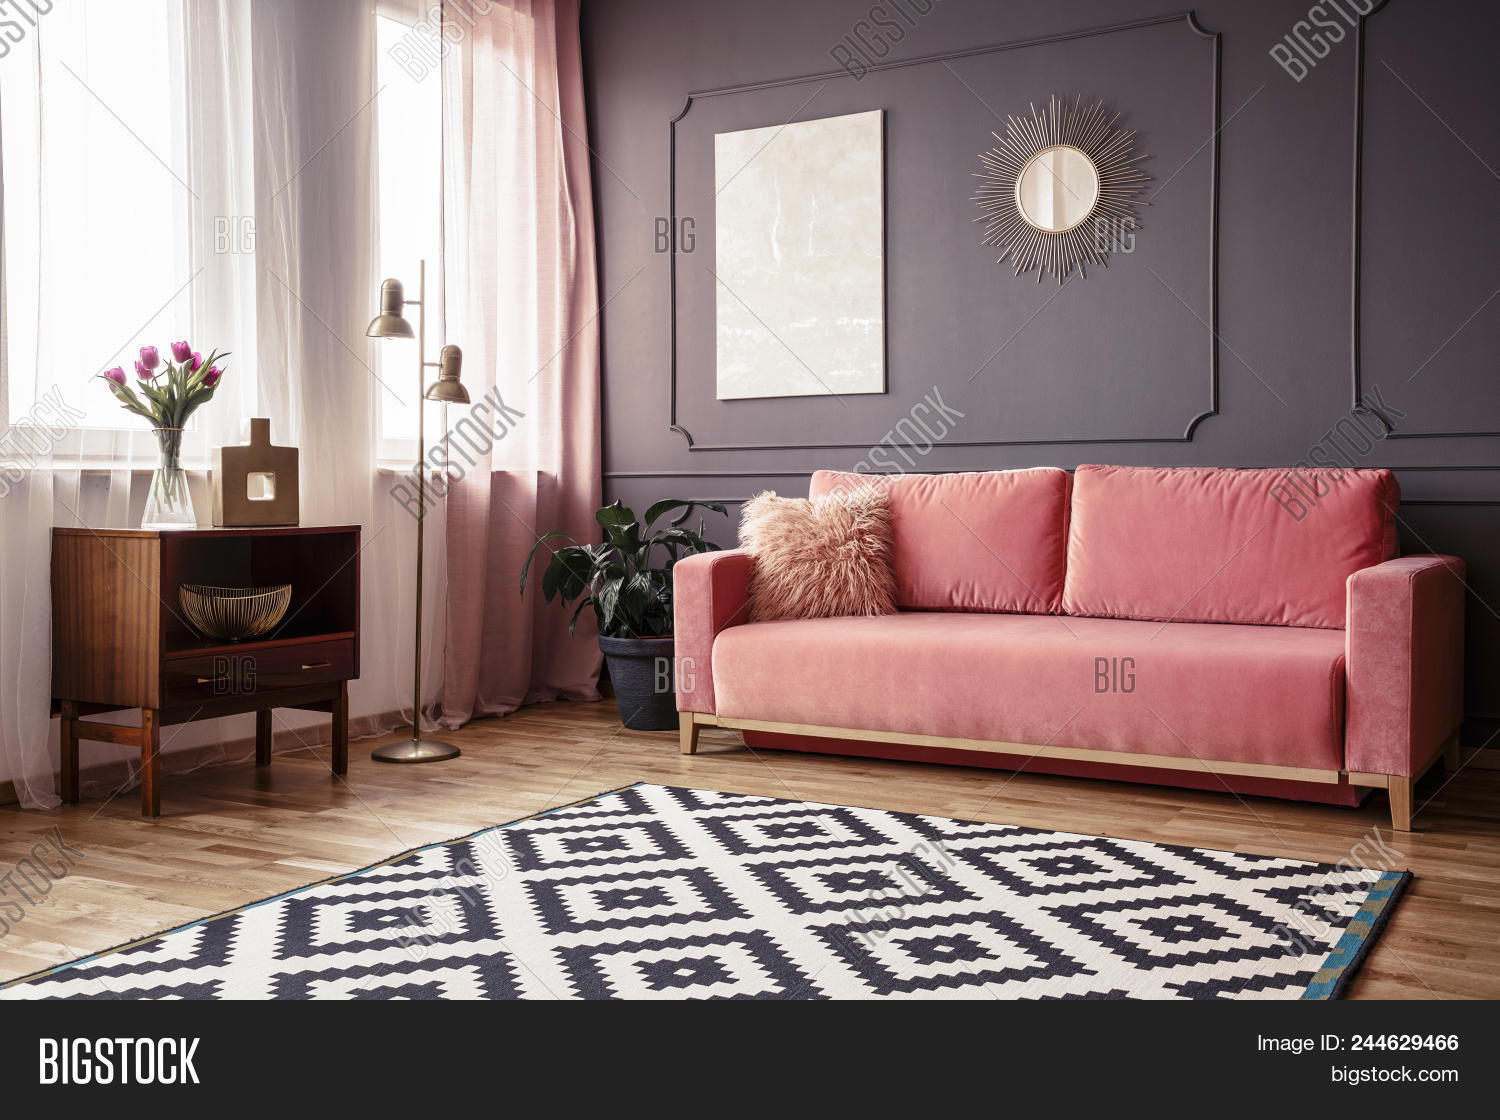 Pleasing Side Angle Living Room Image Photo Free Trial Bigstock Pdpeps Interior Chair Design Pdpepsorg